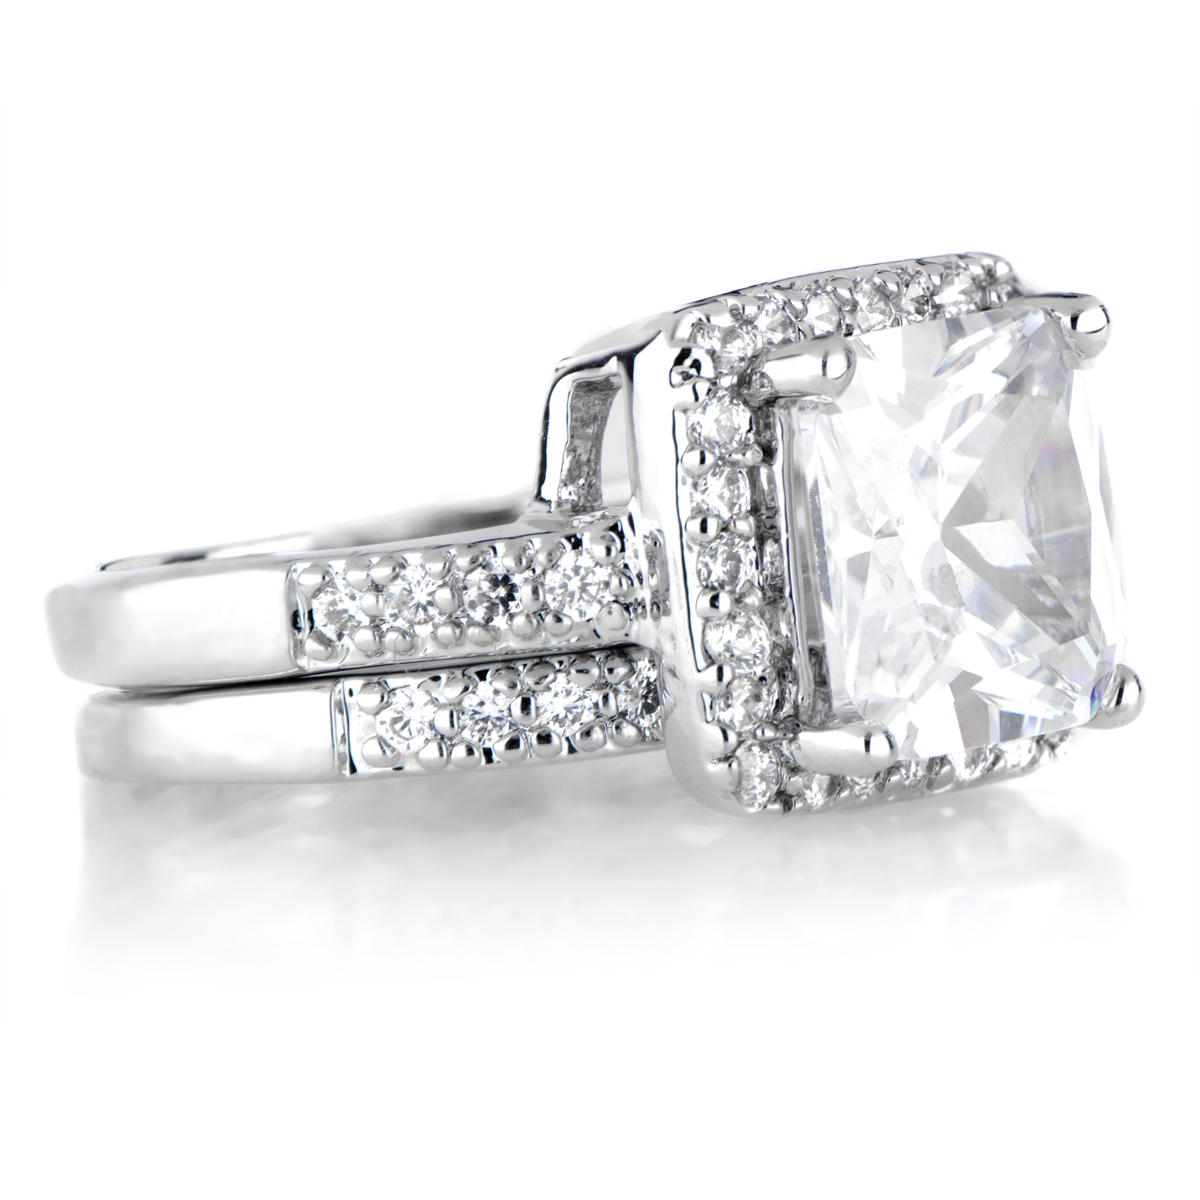 rian s cubic zirconia halo princess cut wedding ring set